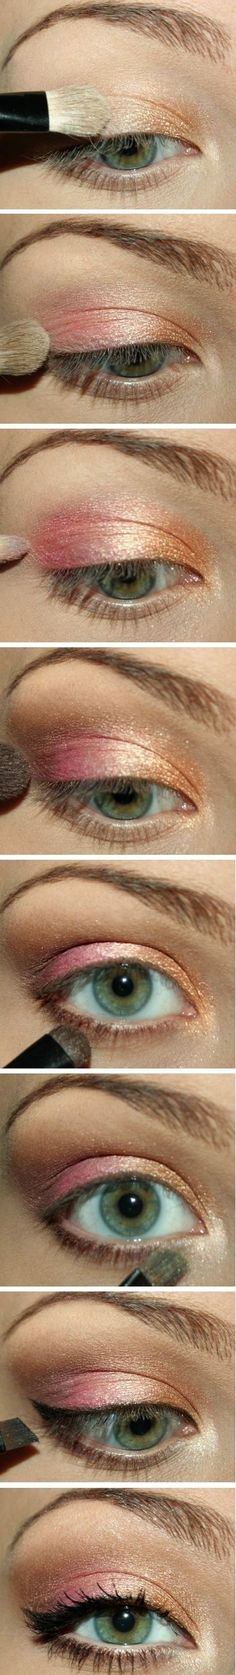 LOVE THE SHADES HERE THEN SOME SMOKEY BROWN AROUND THE LID AND UNDER LID…